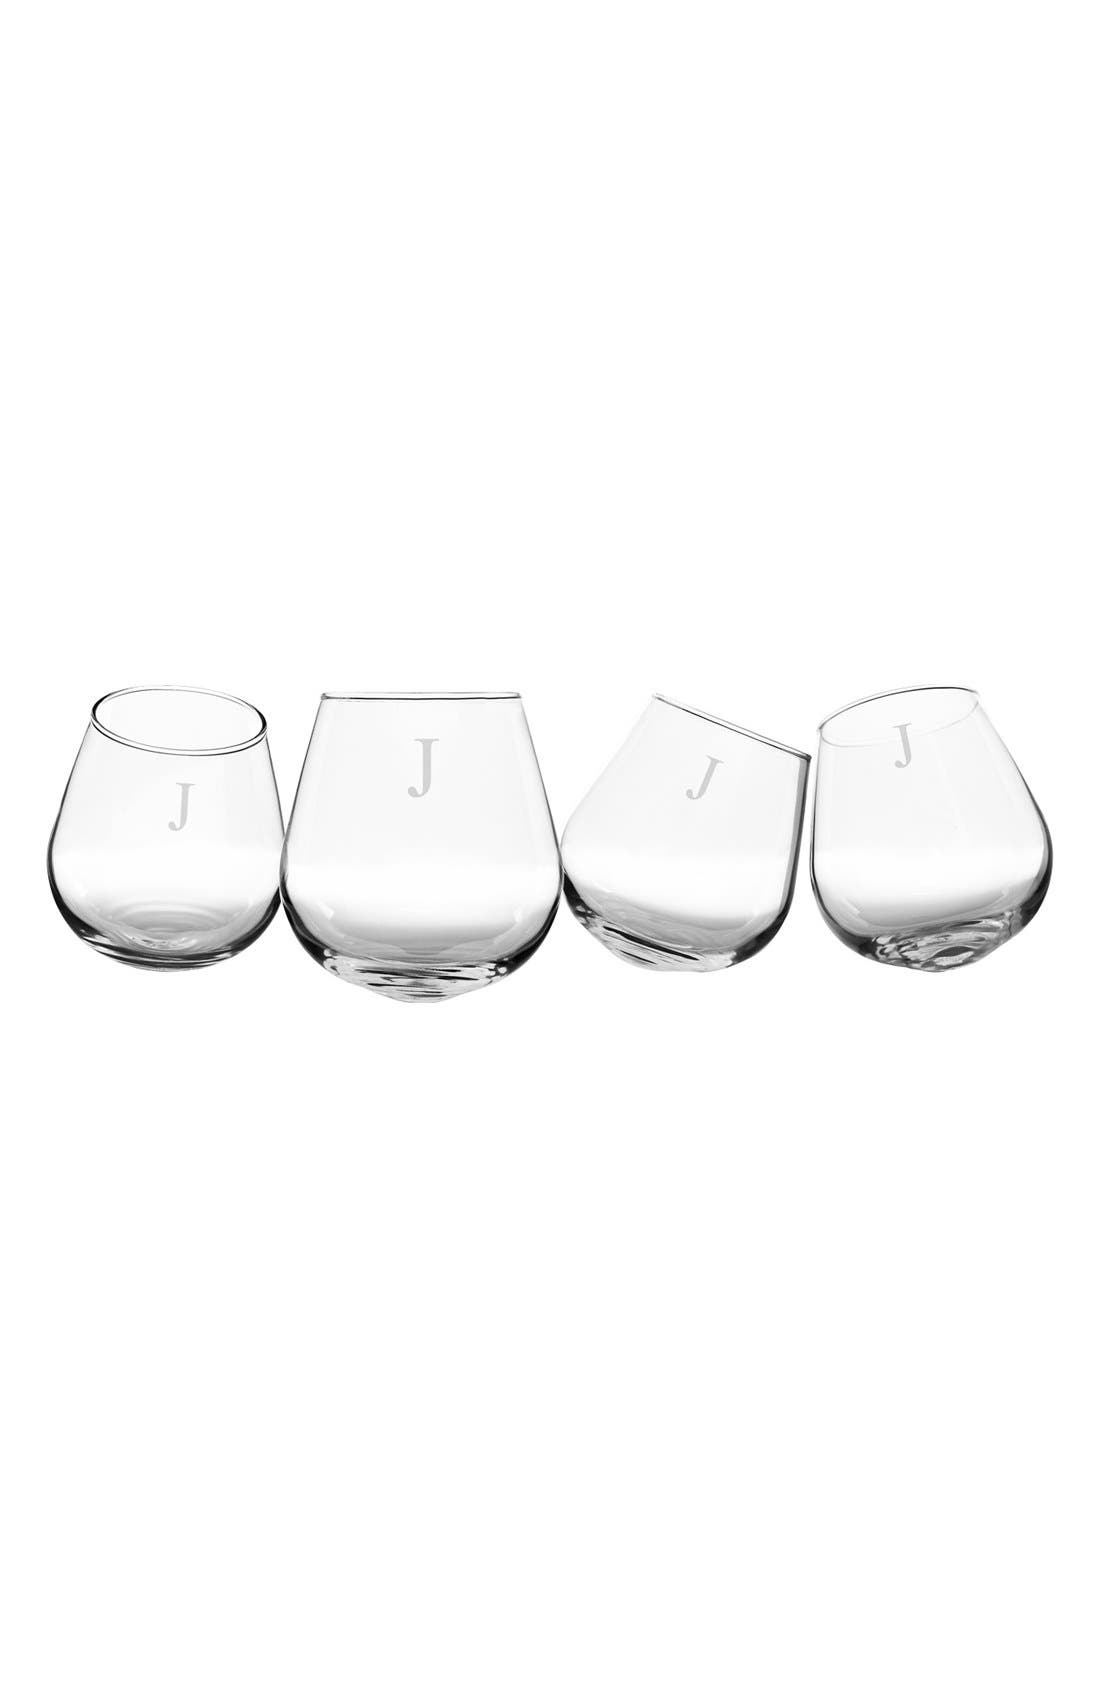 CATHY'S CONCEPTS Monogram Tipsy Set of 4 Wine